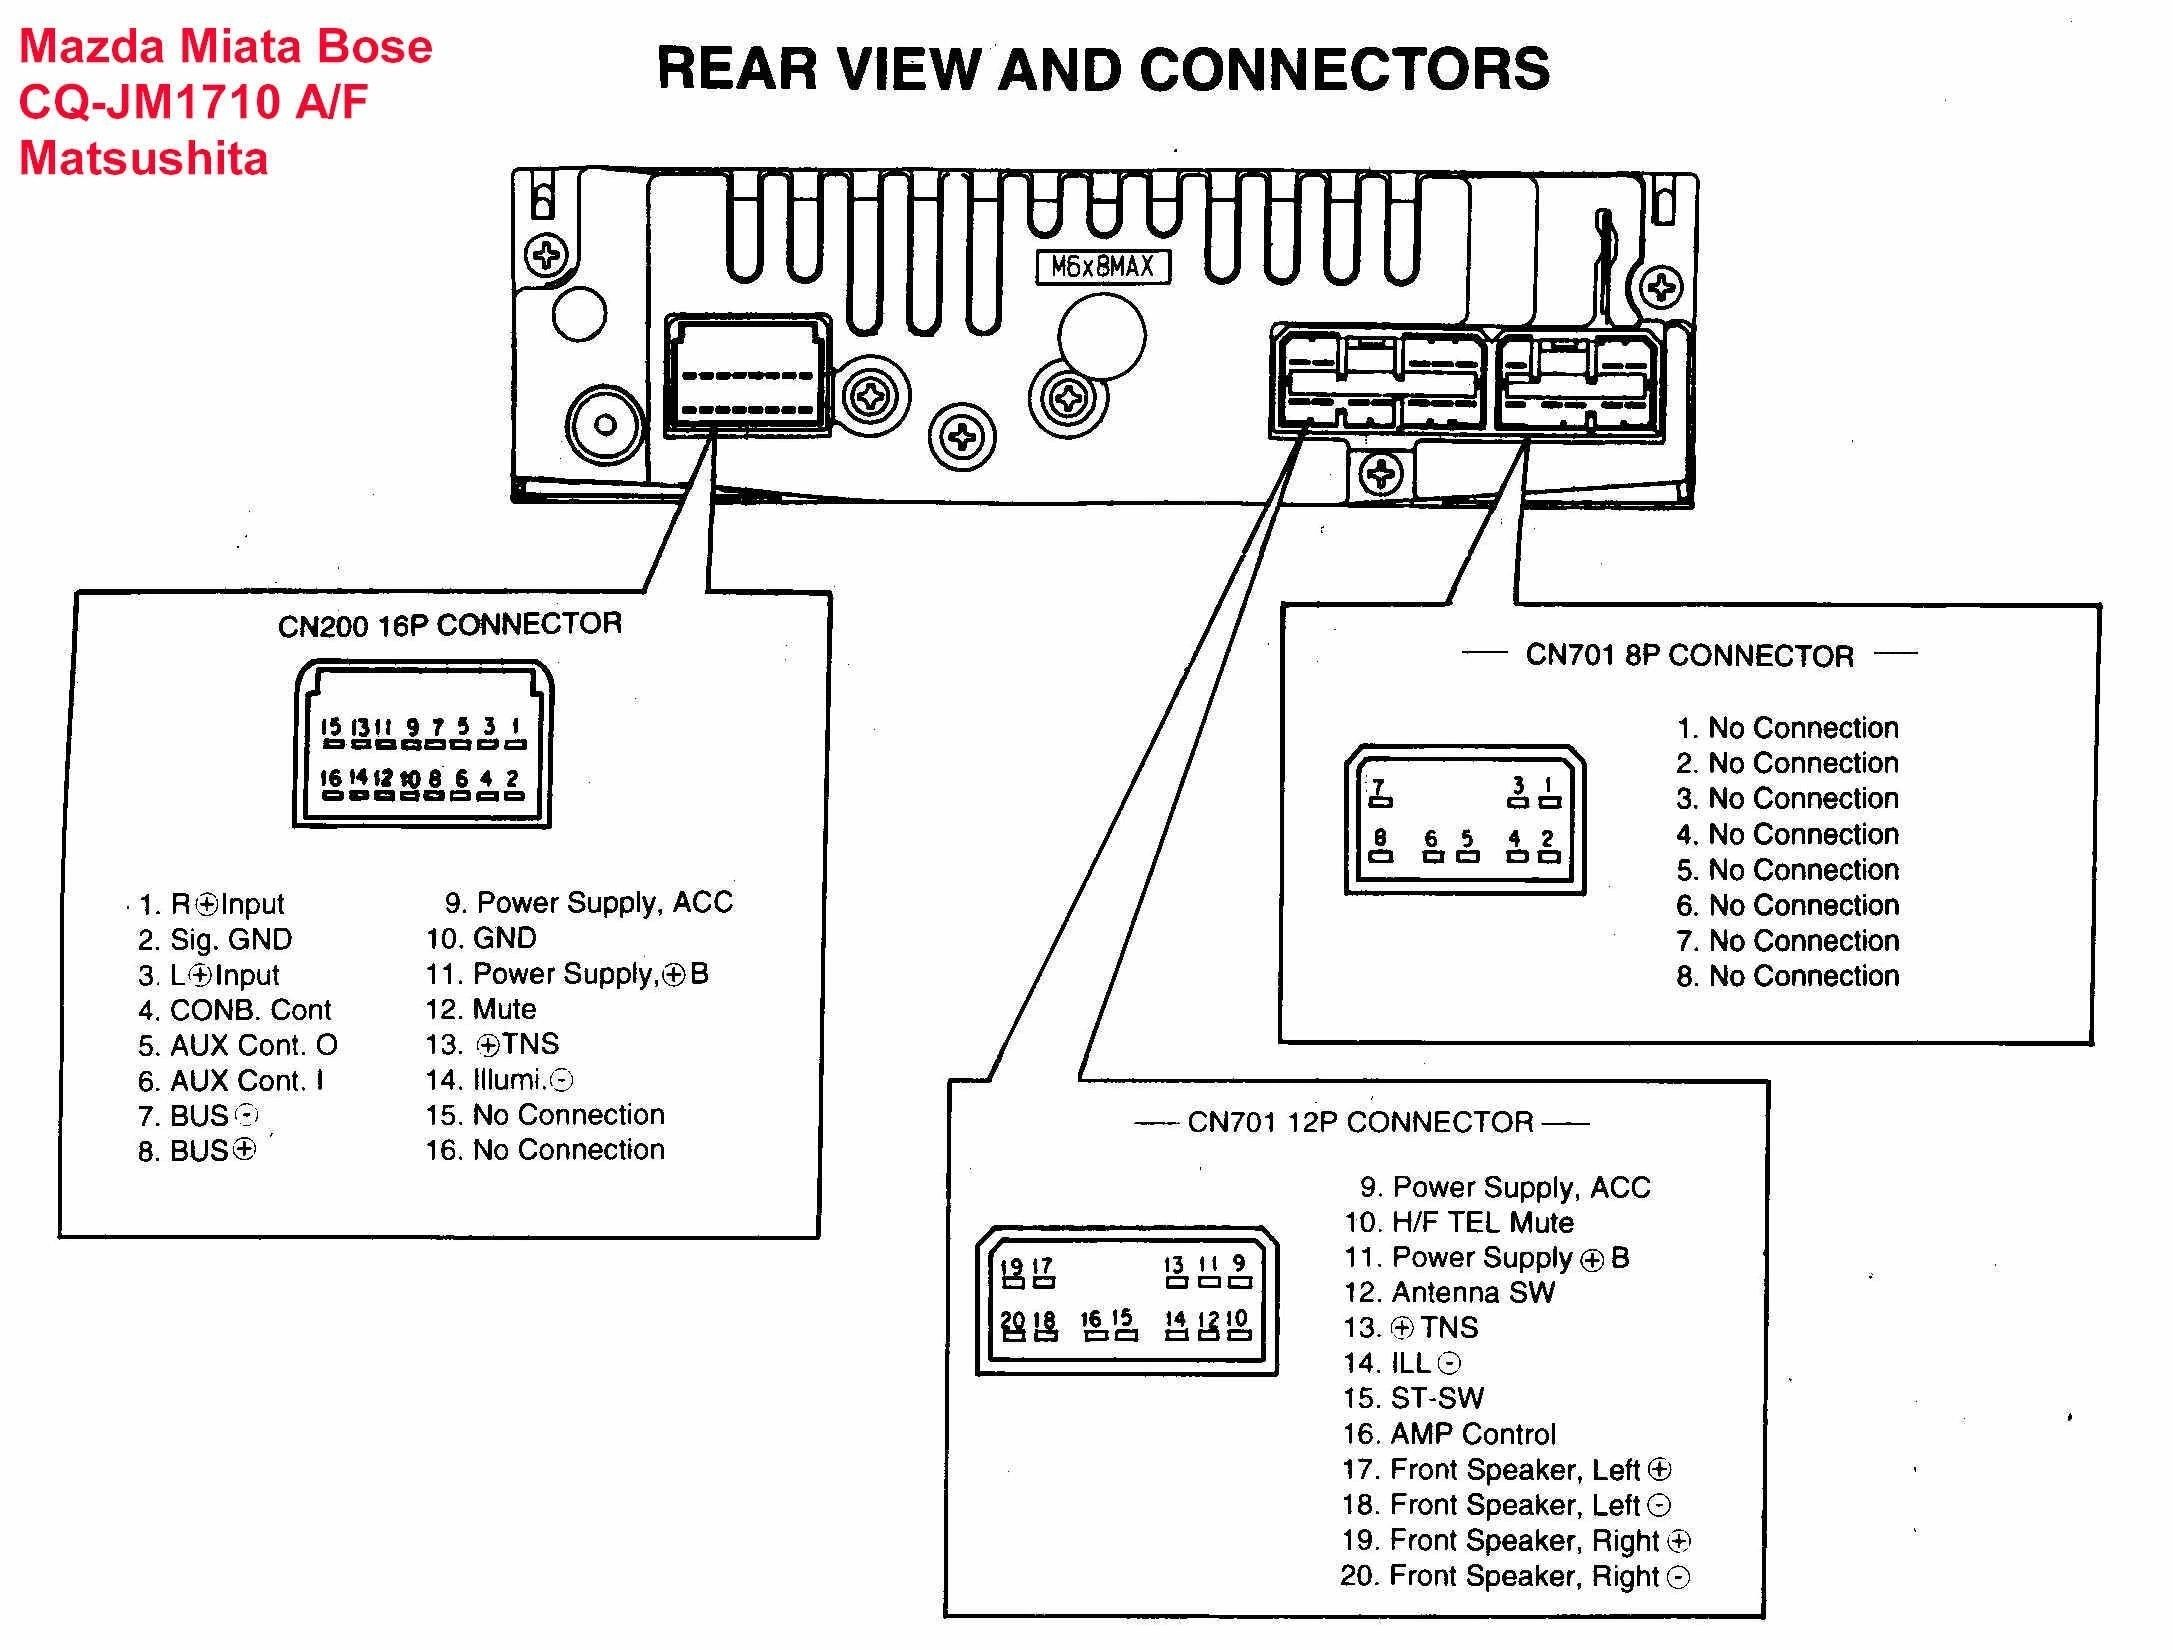 Bmw E46 Radio Harness Diagram In 2020 Car Stereo Systems Trailer Wiring Diagram Car Stereo